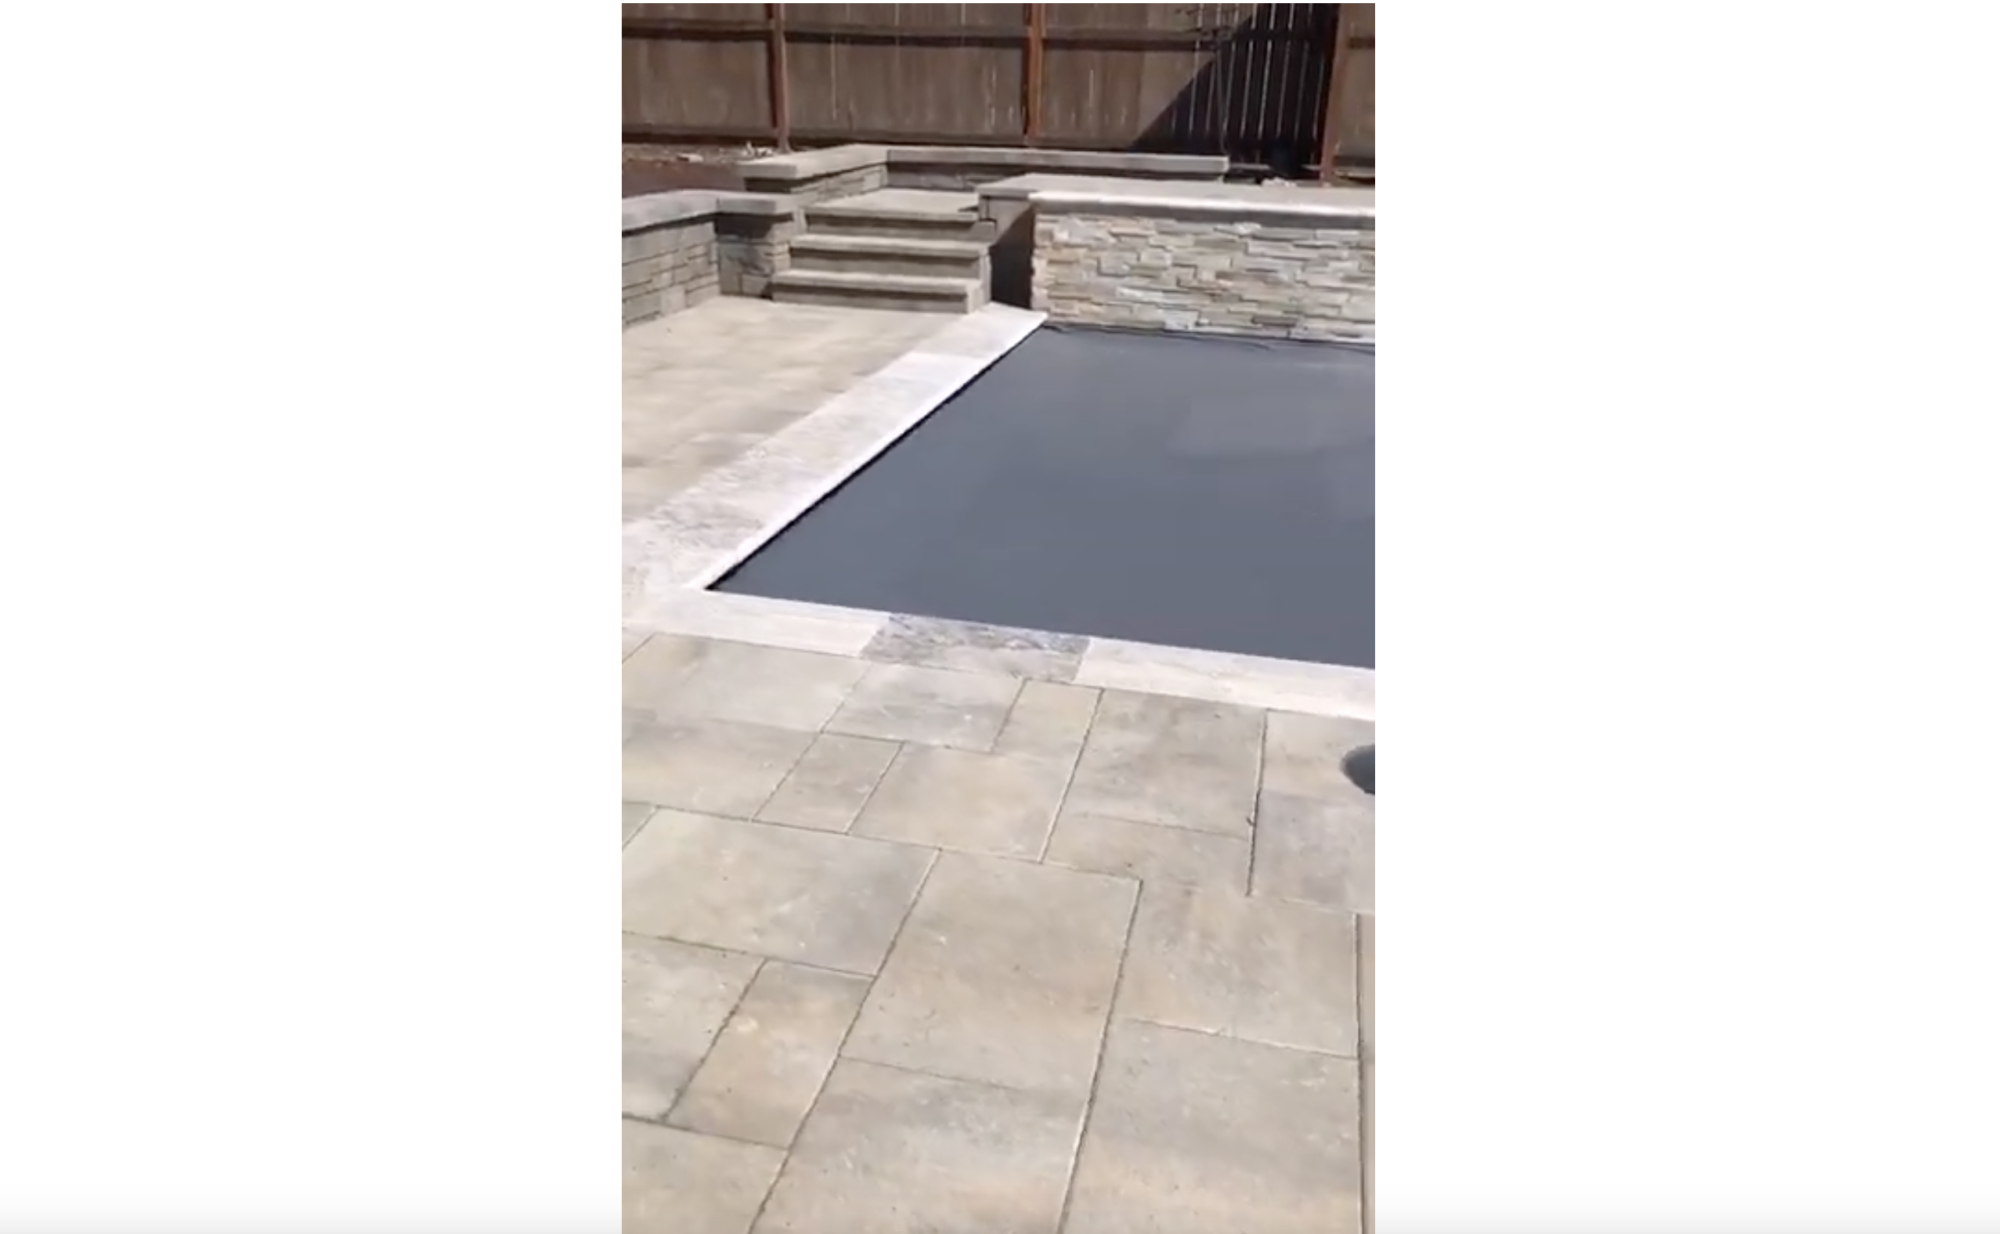 Western Paver Design Portland Oregon Outdoor Hardscaping